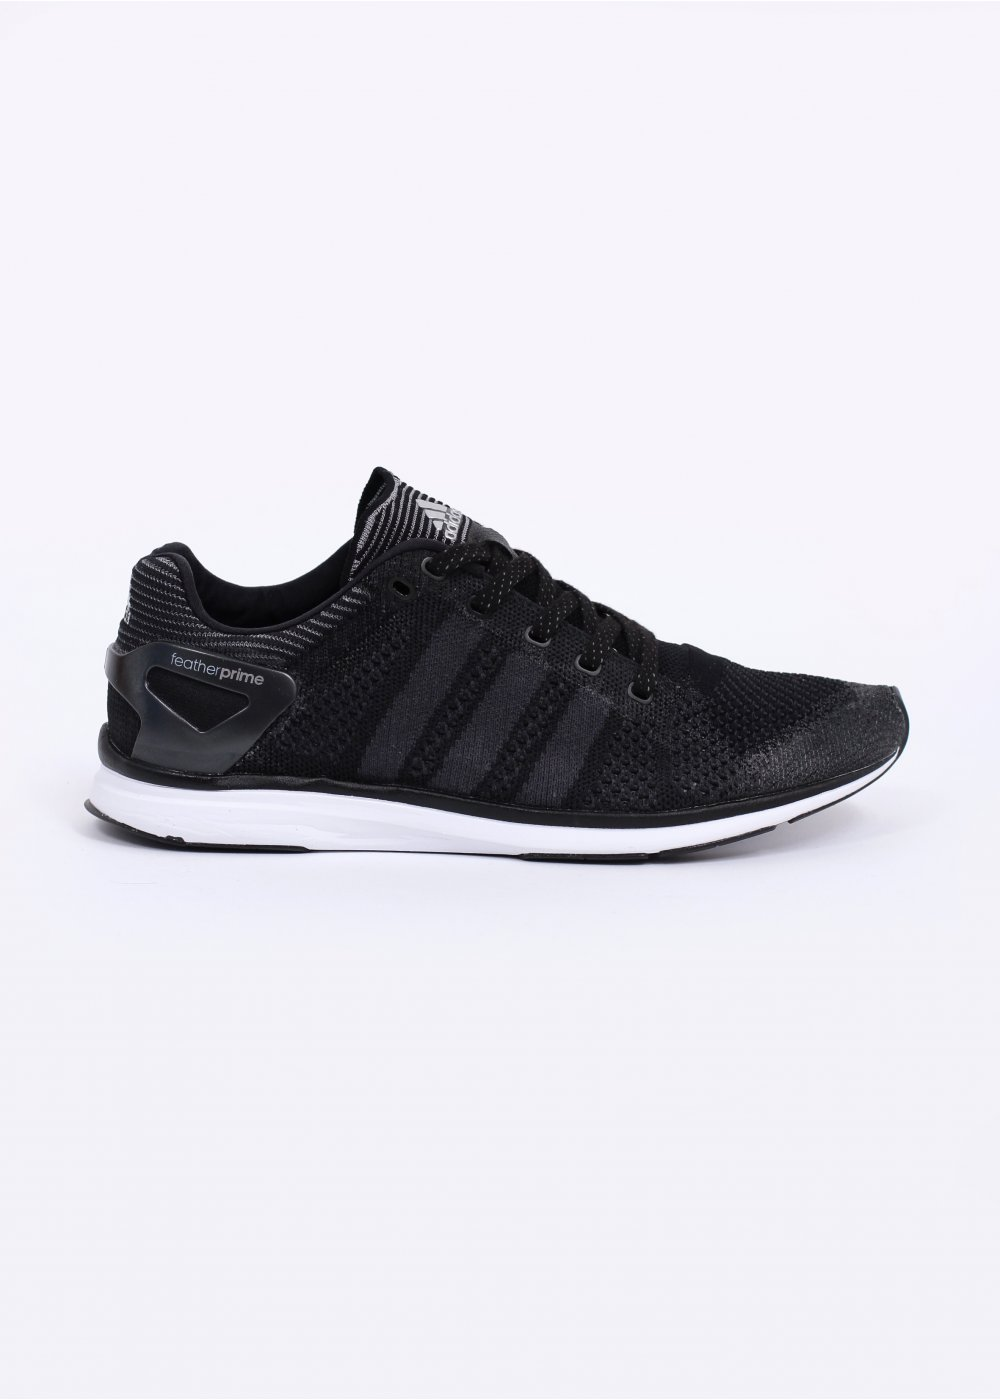 online store 38b09 439dd Adizero Feather Primeknit Trainers - Black  Phantom